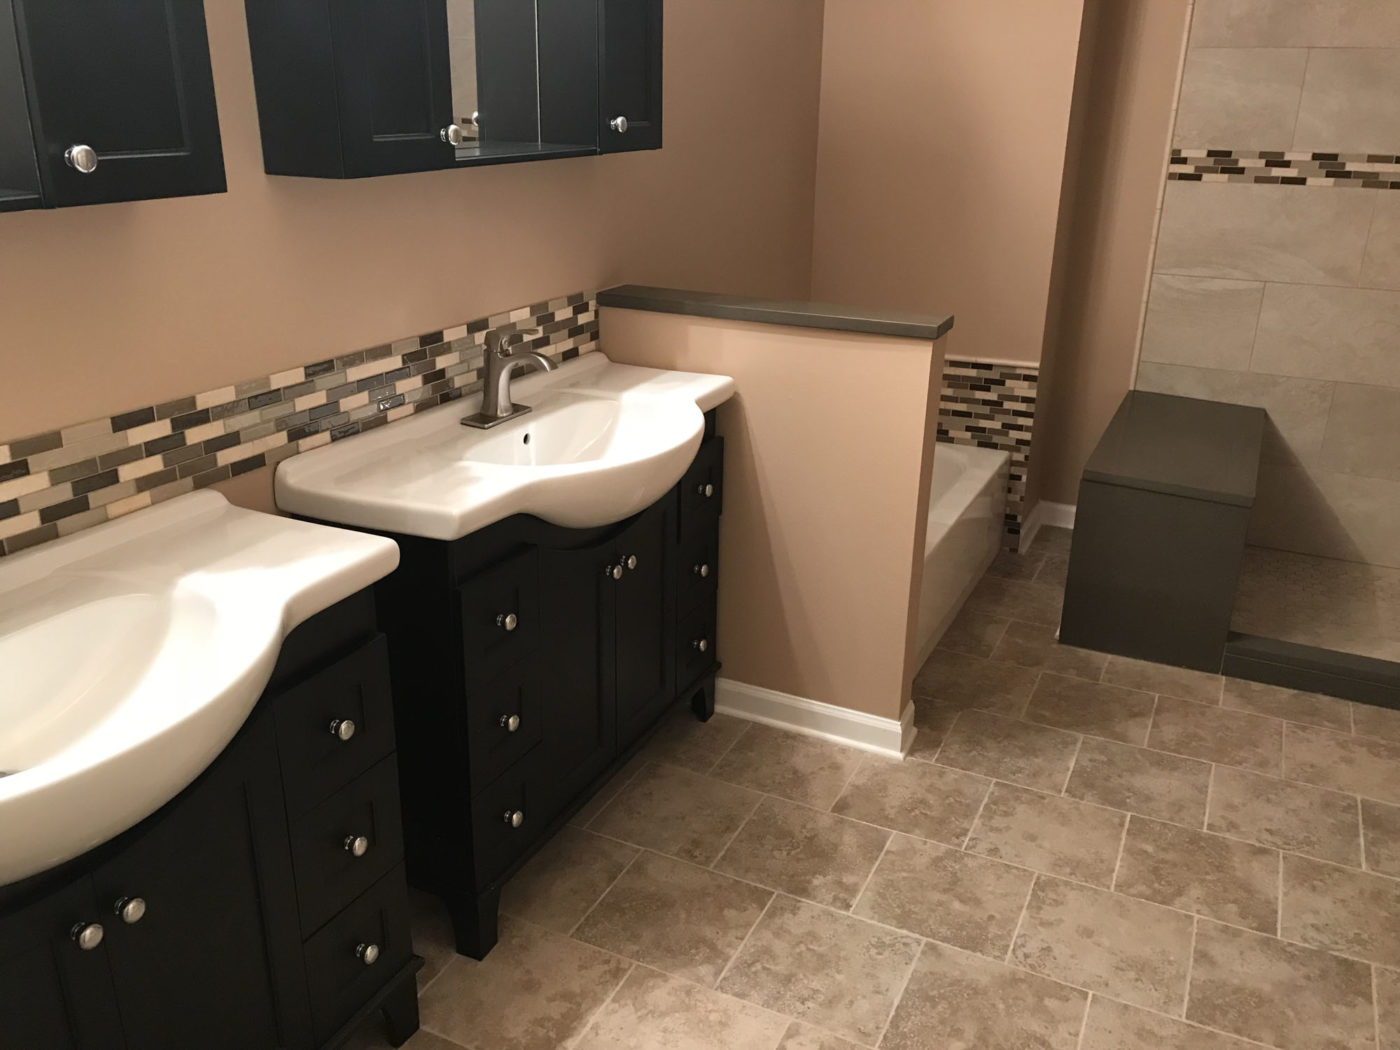 Bathroom Remodeling In Hanover Park - natural stone tile and backsplash